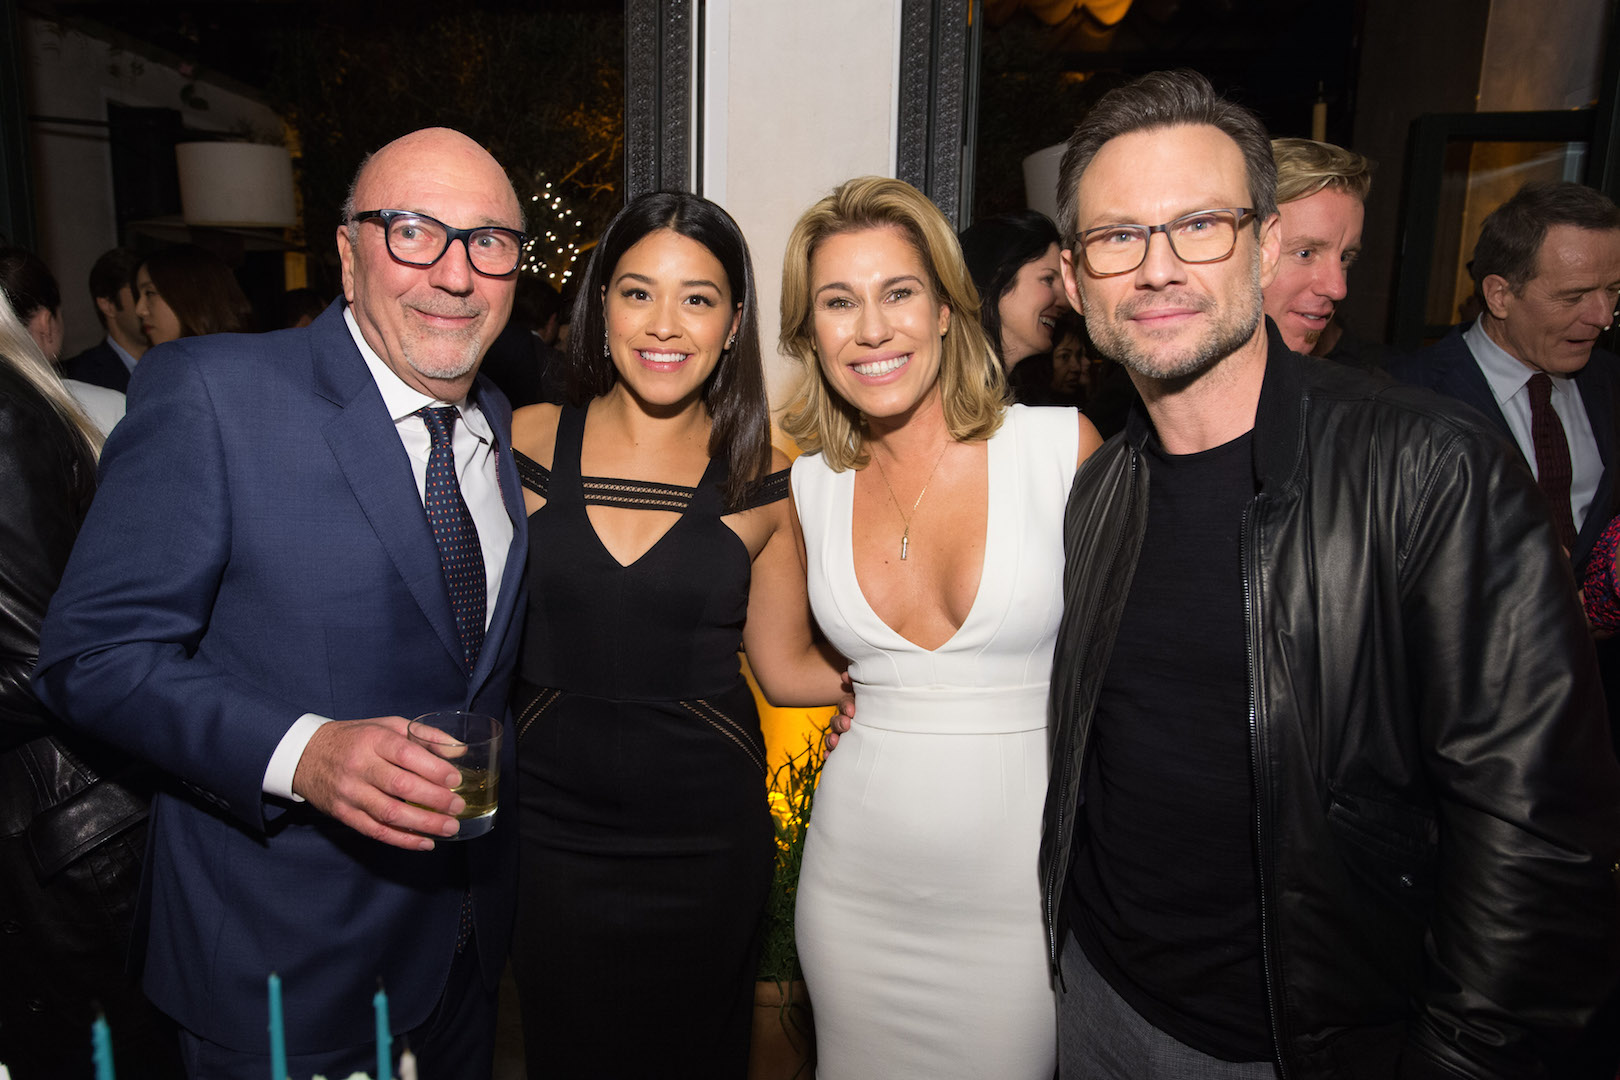 HFPA  President Lorenzo Soria, Gina Rodriguez, Lilla Soria Pausits and Christian Slater attend a party for the announcement of Corinne Foxx as Miss Golden Globe 2016 for the 73rd Annual Golden Globe Awards set to air live on NBC on January 10, 2016.  President Lorenzo Soria made the announcement on November 17, 2015 from Ysabel Restaurant in West Hollywood.